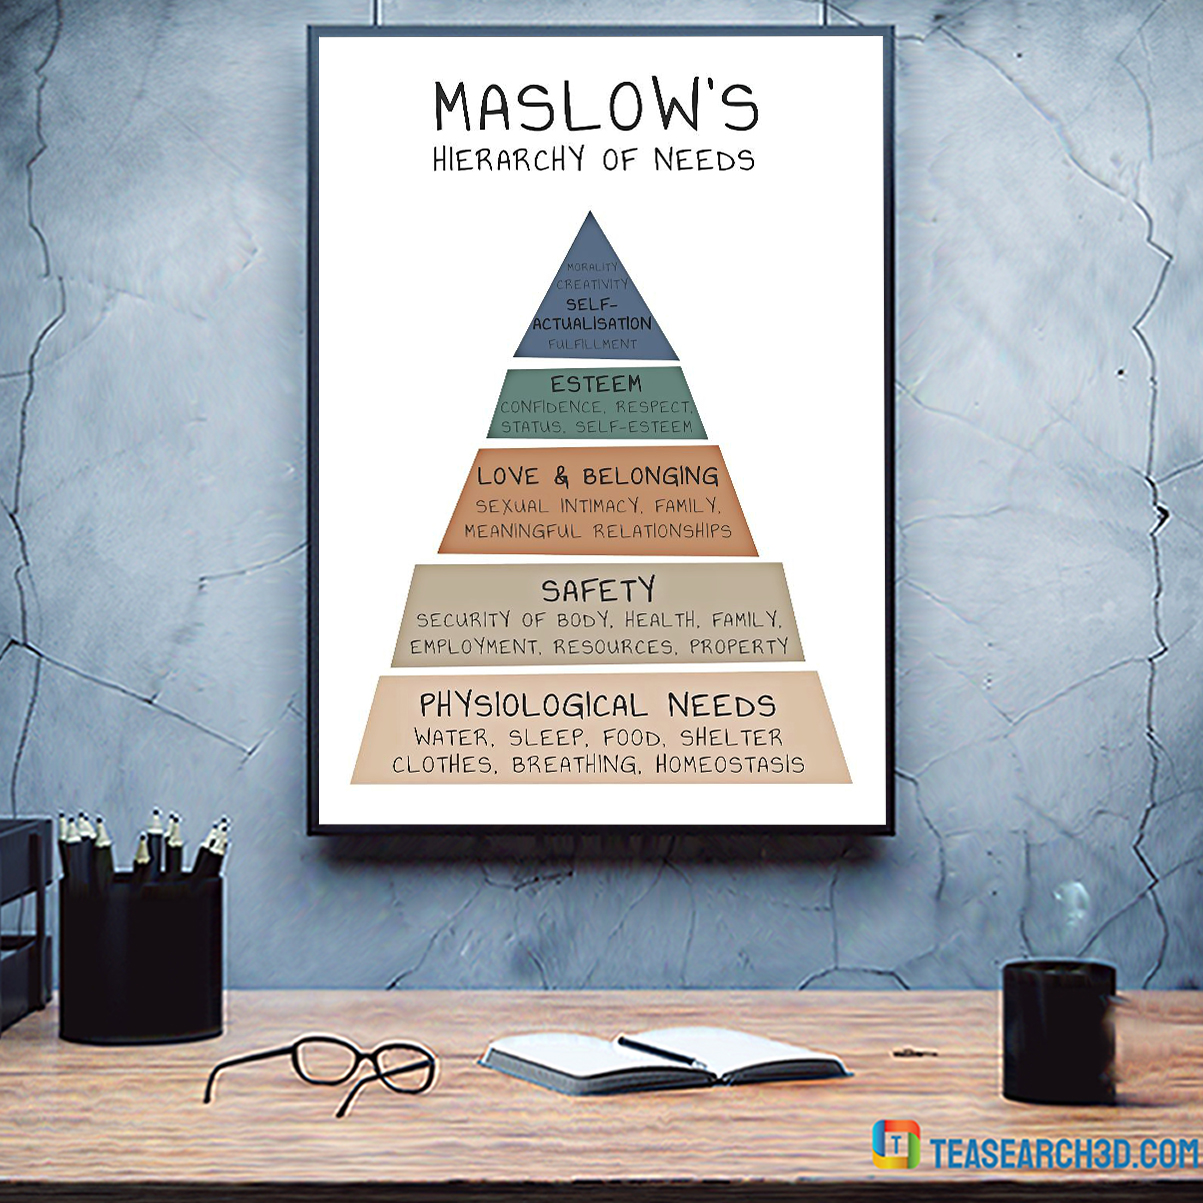 Social worker maslow's hierarchy of need vertical poster A3